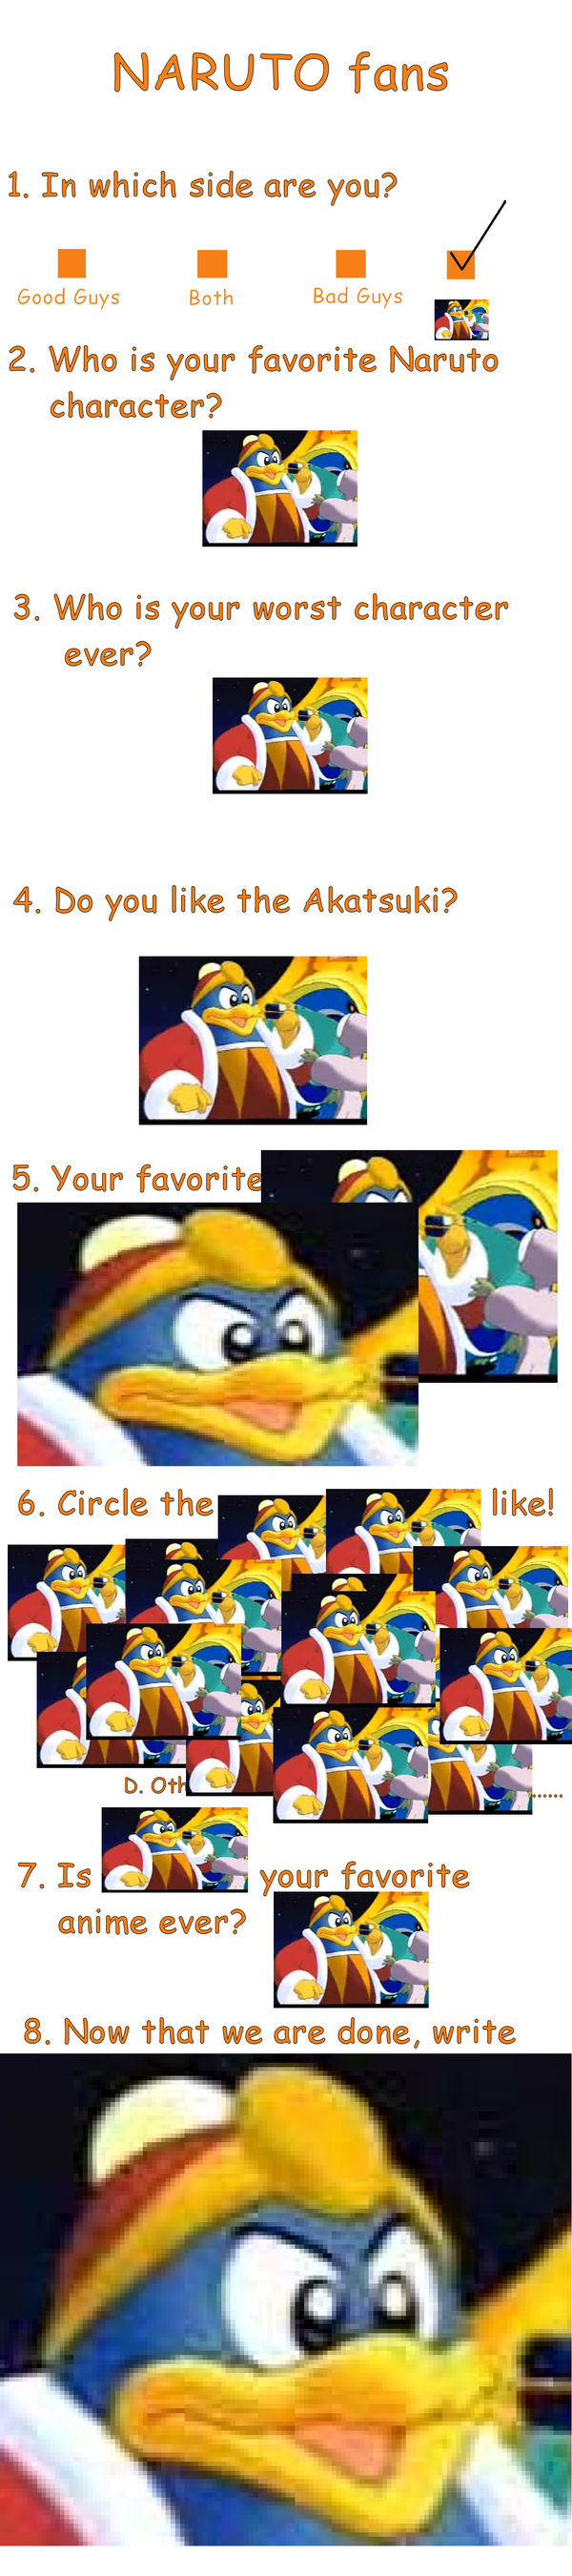 KING DEDEDE HAS INVADED A MEME by Rex507